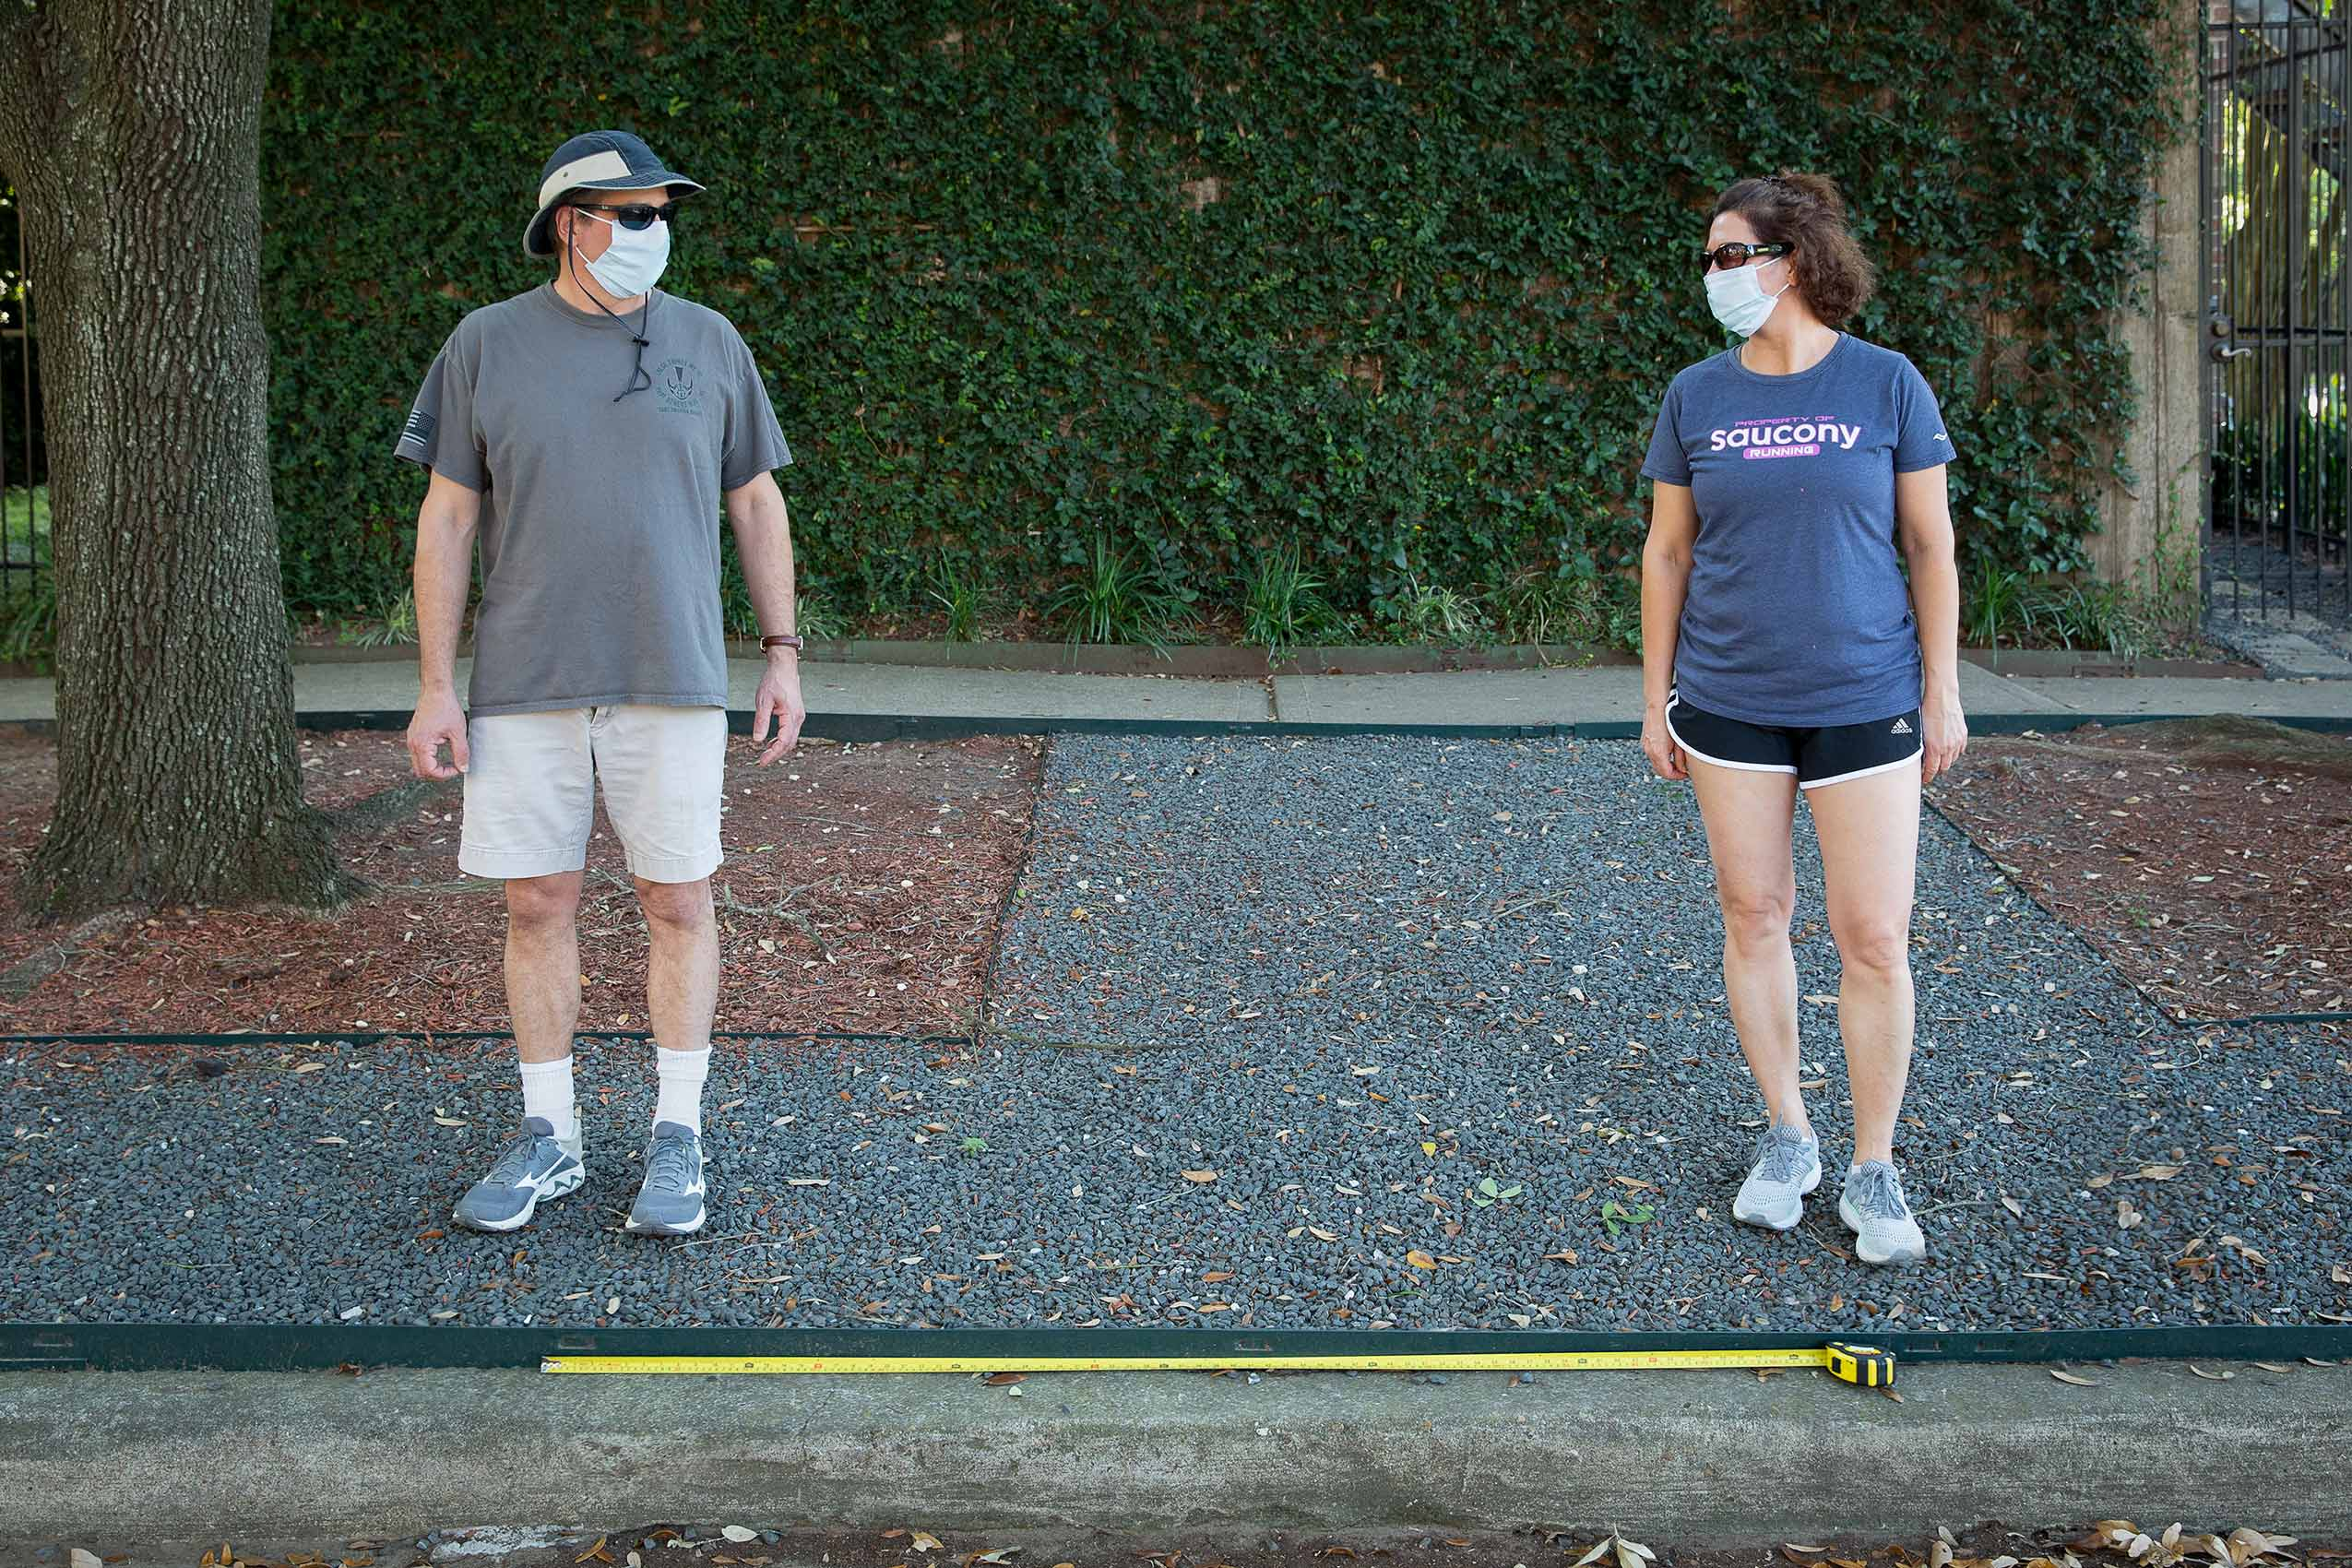 A couple wearing masks stand apart with a long tape measure as a symbol of Covid-19 social distance